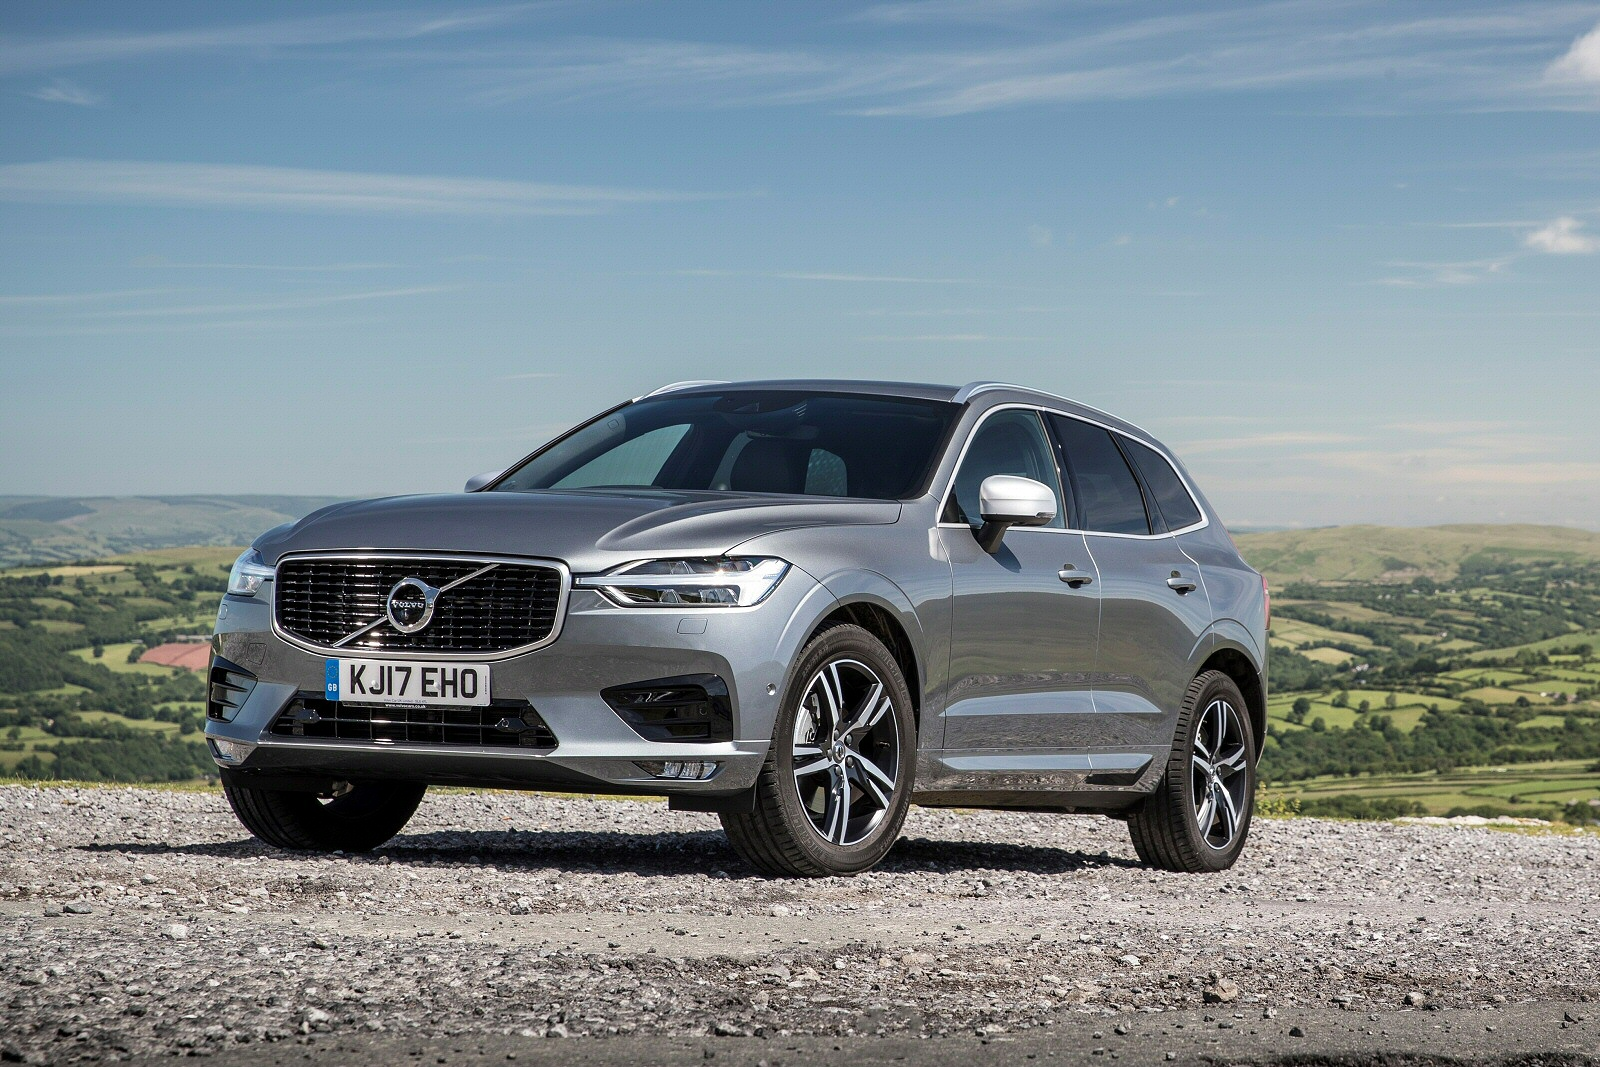 New Volvo Xc60 2.0 D4 Momentum 5dr AWD Geartronic Diesel Estate for Sale | Bristol Street